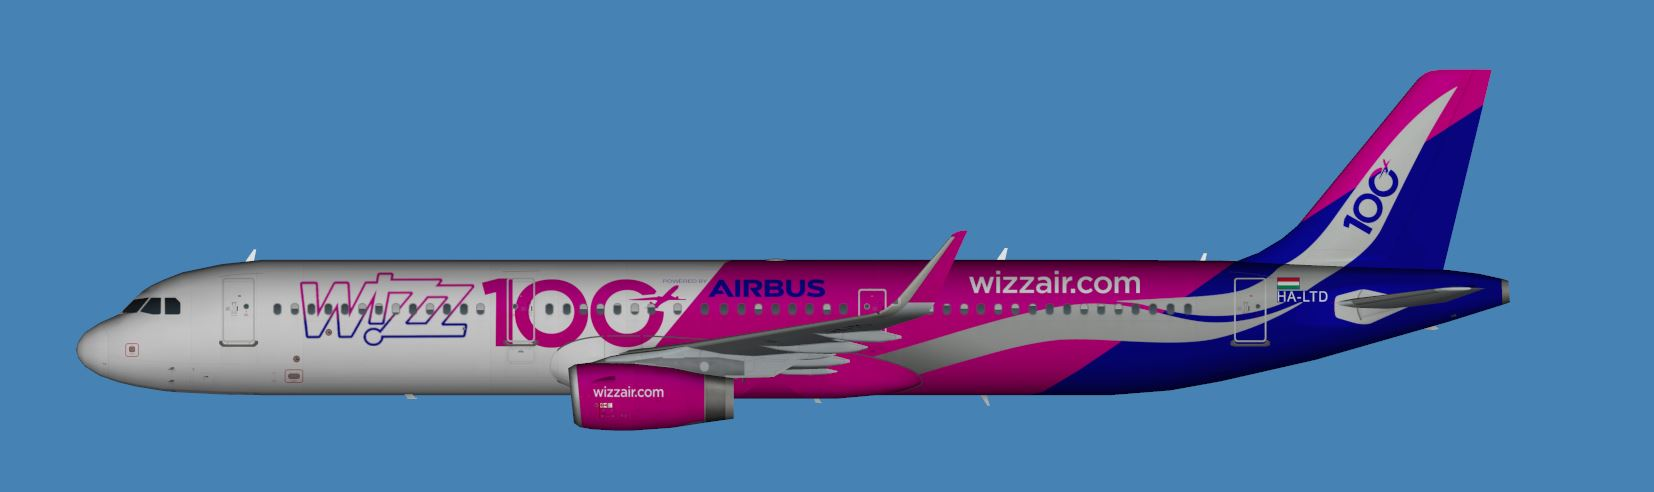 "Wizzair Airbus A321-200 FSX ""updated"" 